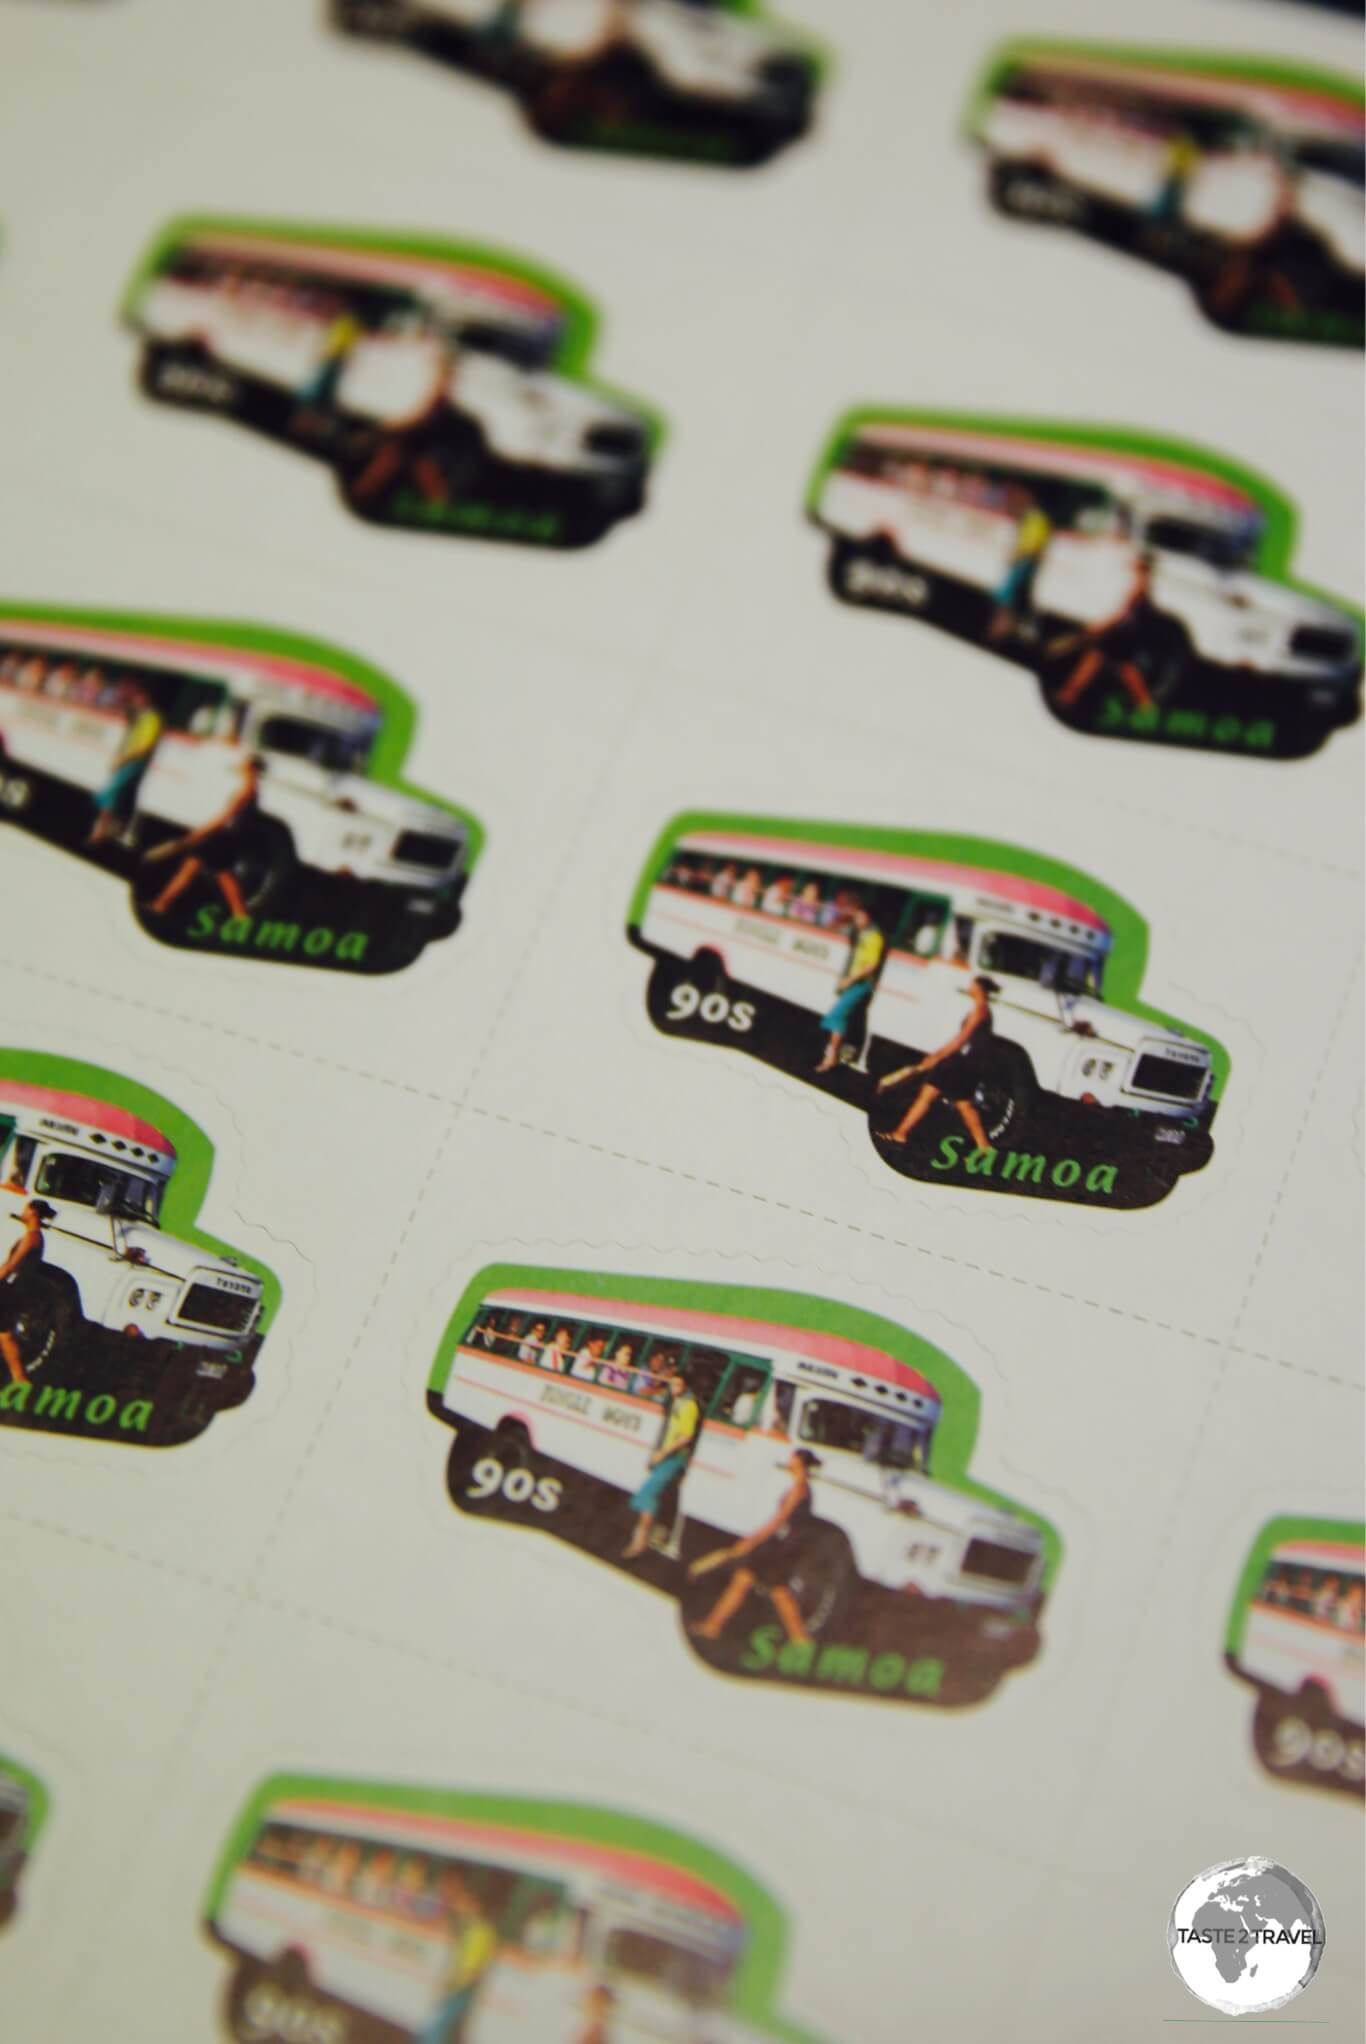 The iconic public buses featured in a popular stamp issue.